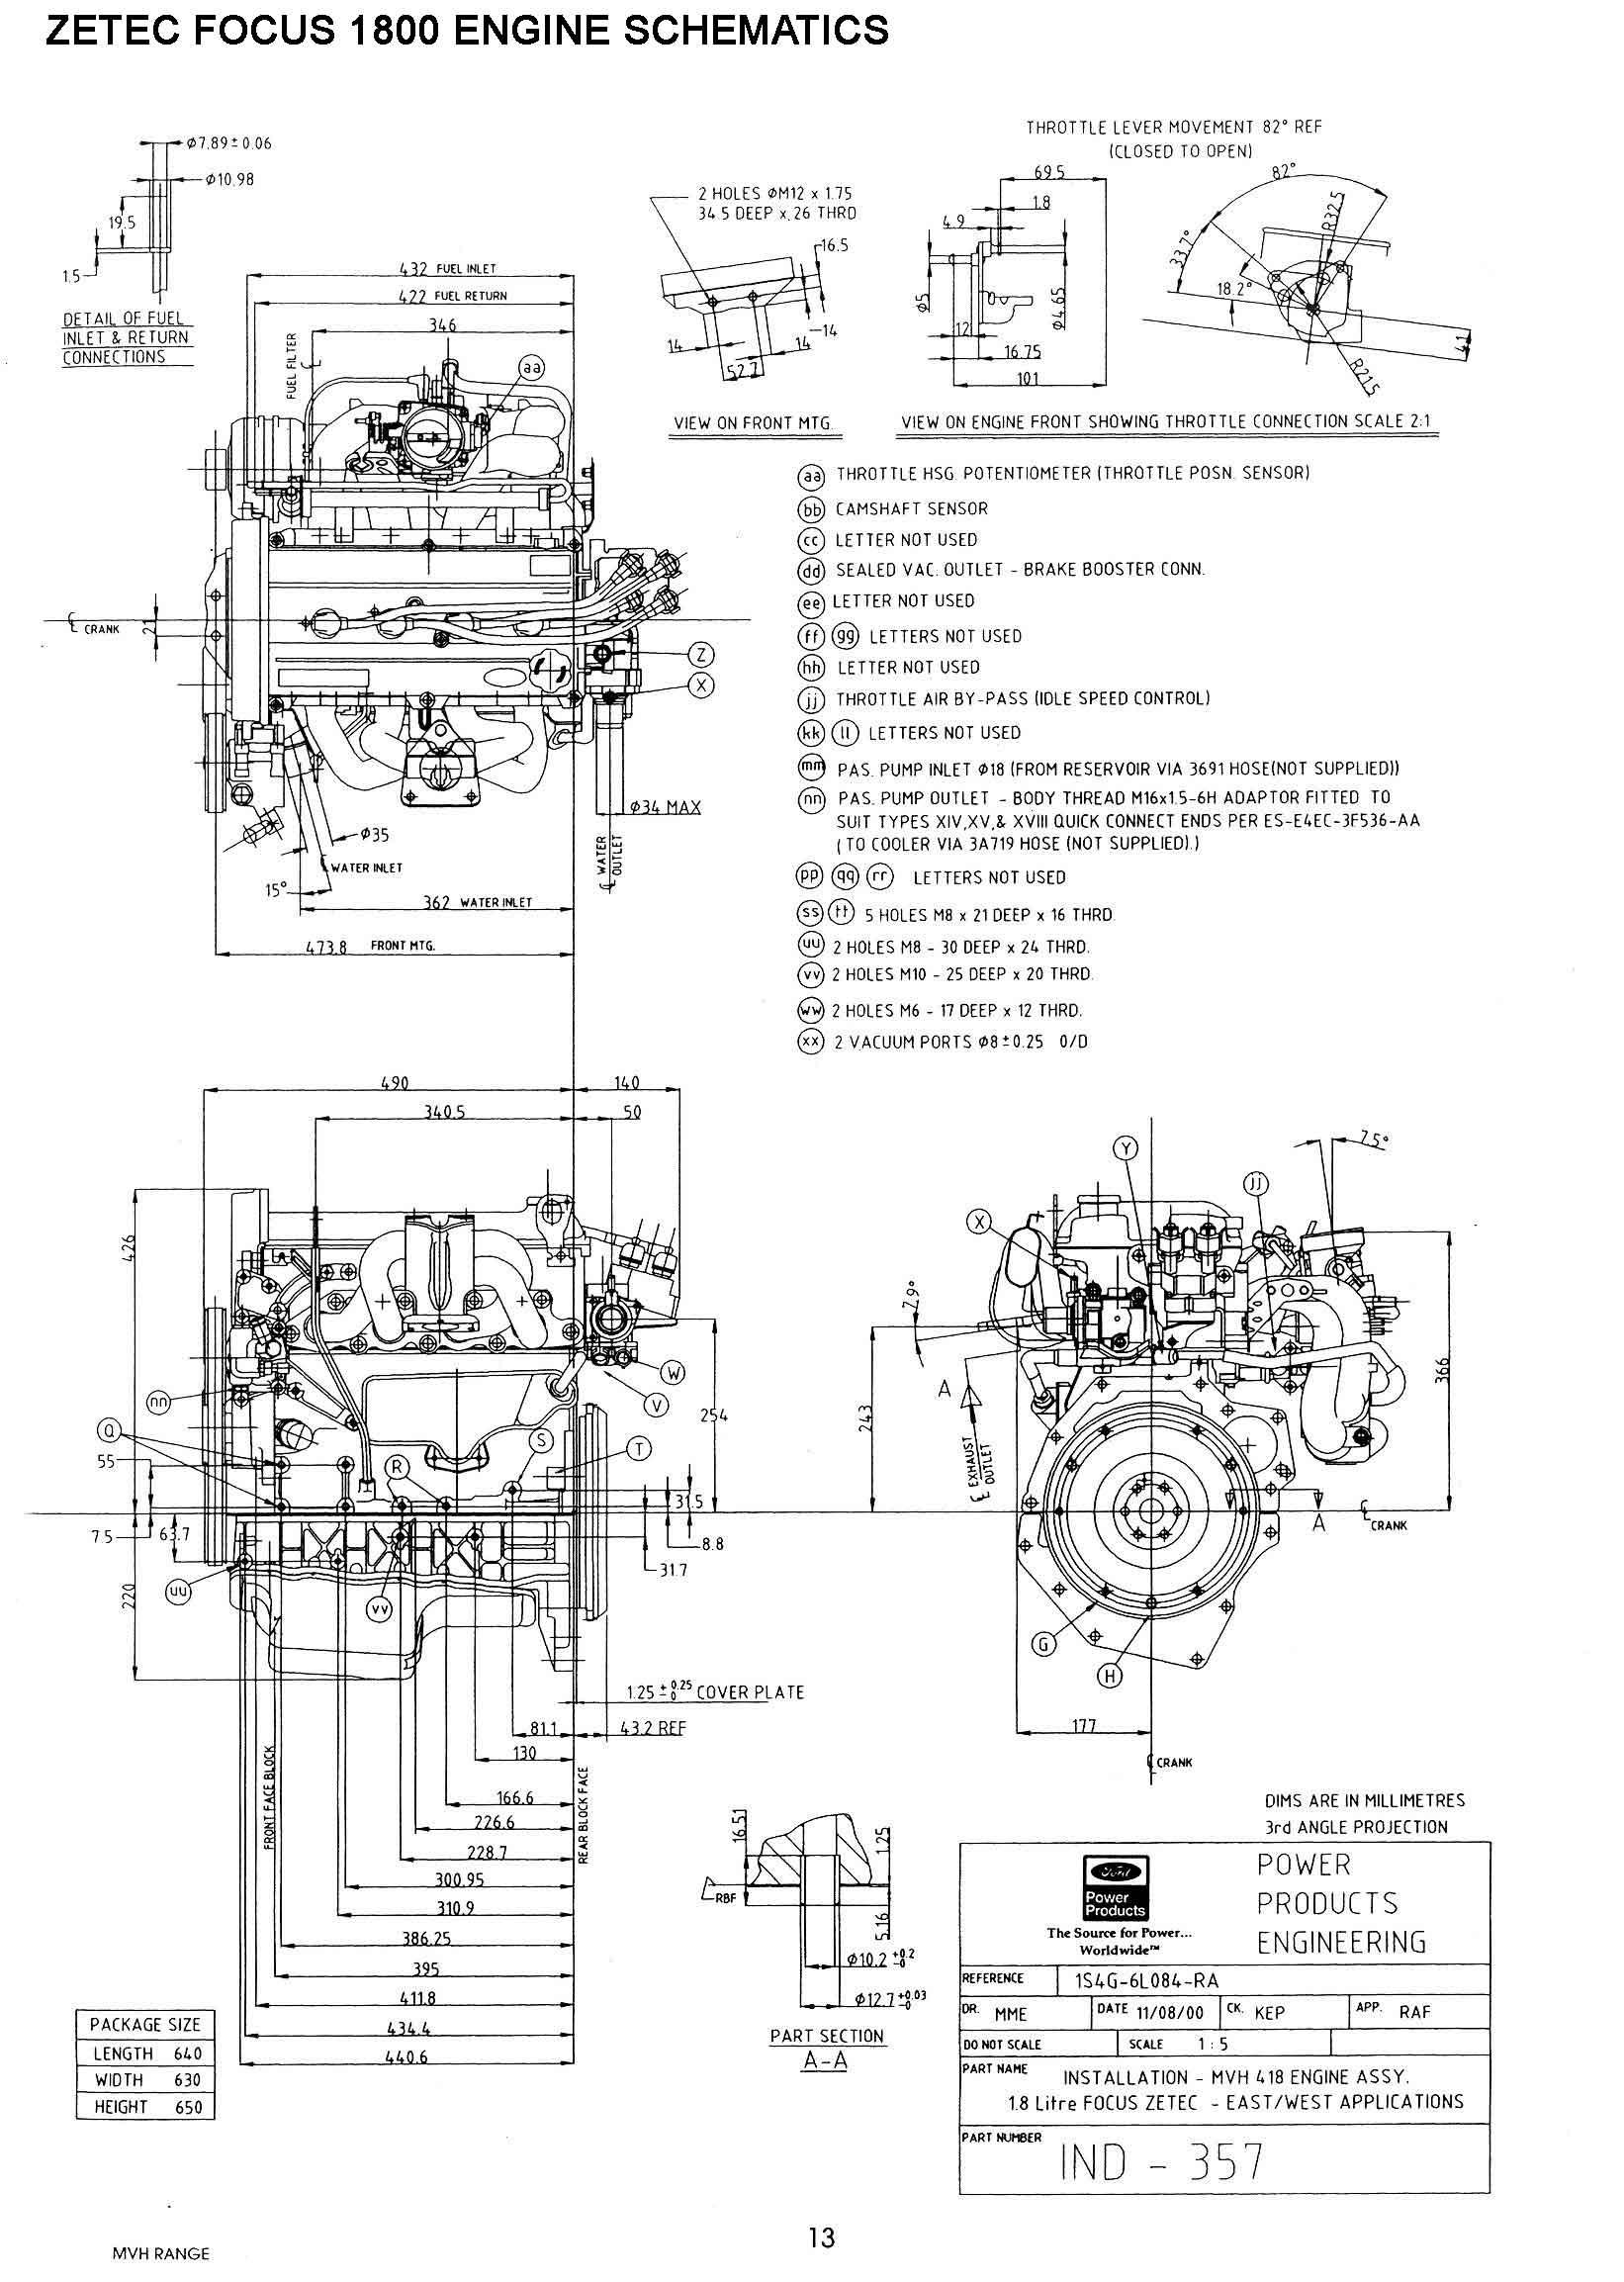 Ford Focus Svt Engines Parts Diagram, Ford, Free Engine